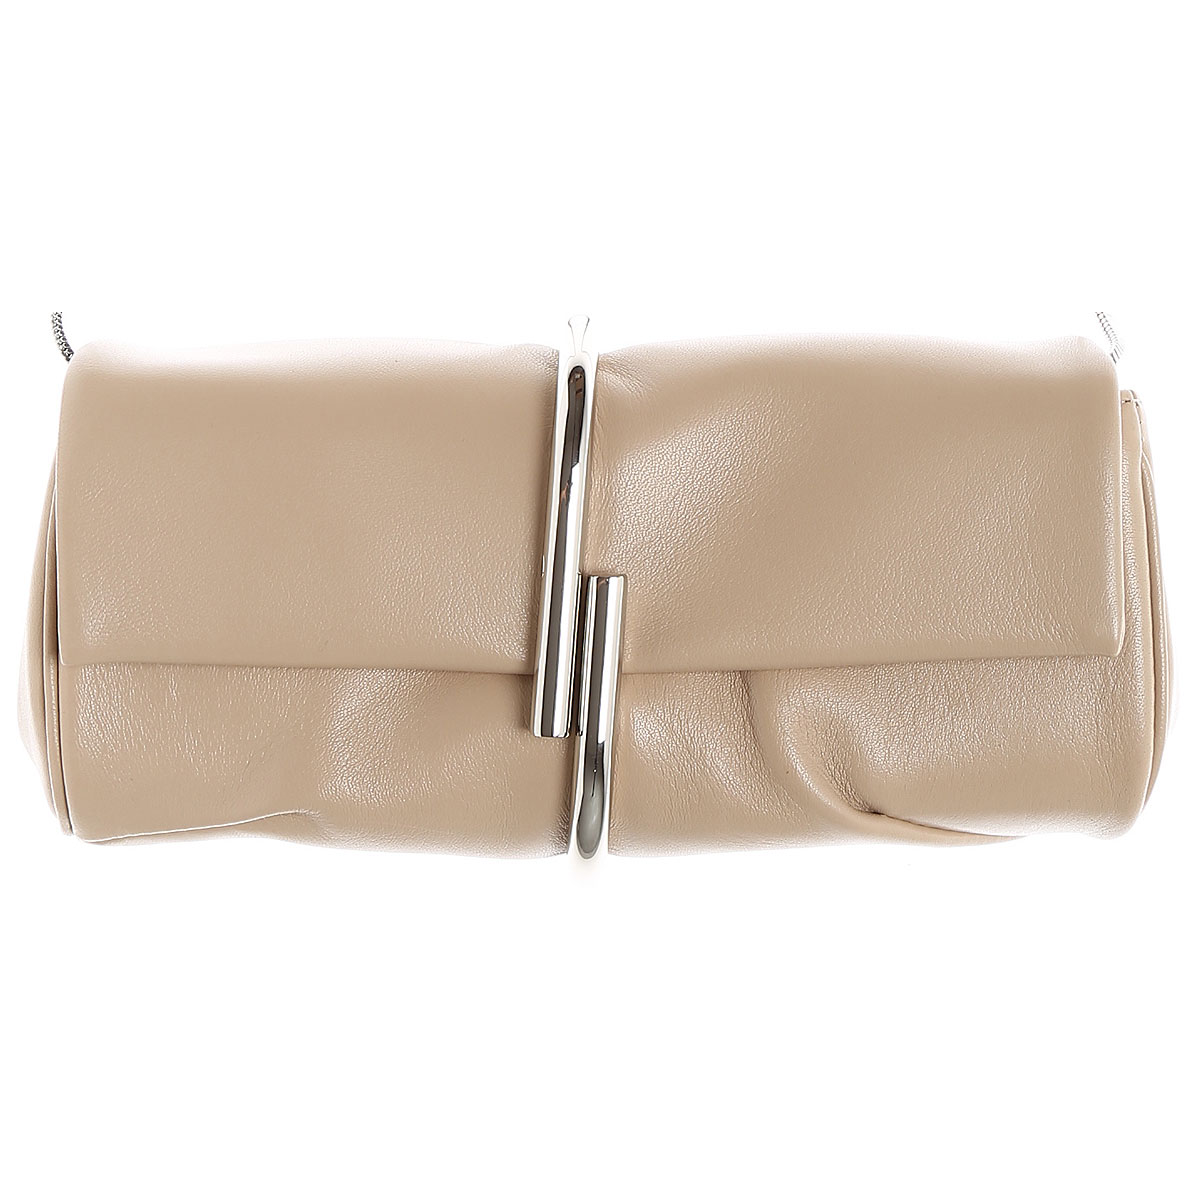 Image of 3.1 PHILLIP LIM Clutch Bag On Sale in Outlet, Fawn, Leather, 2017